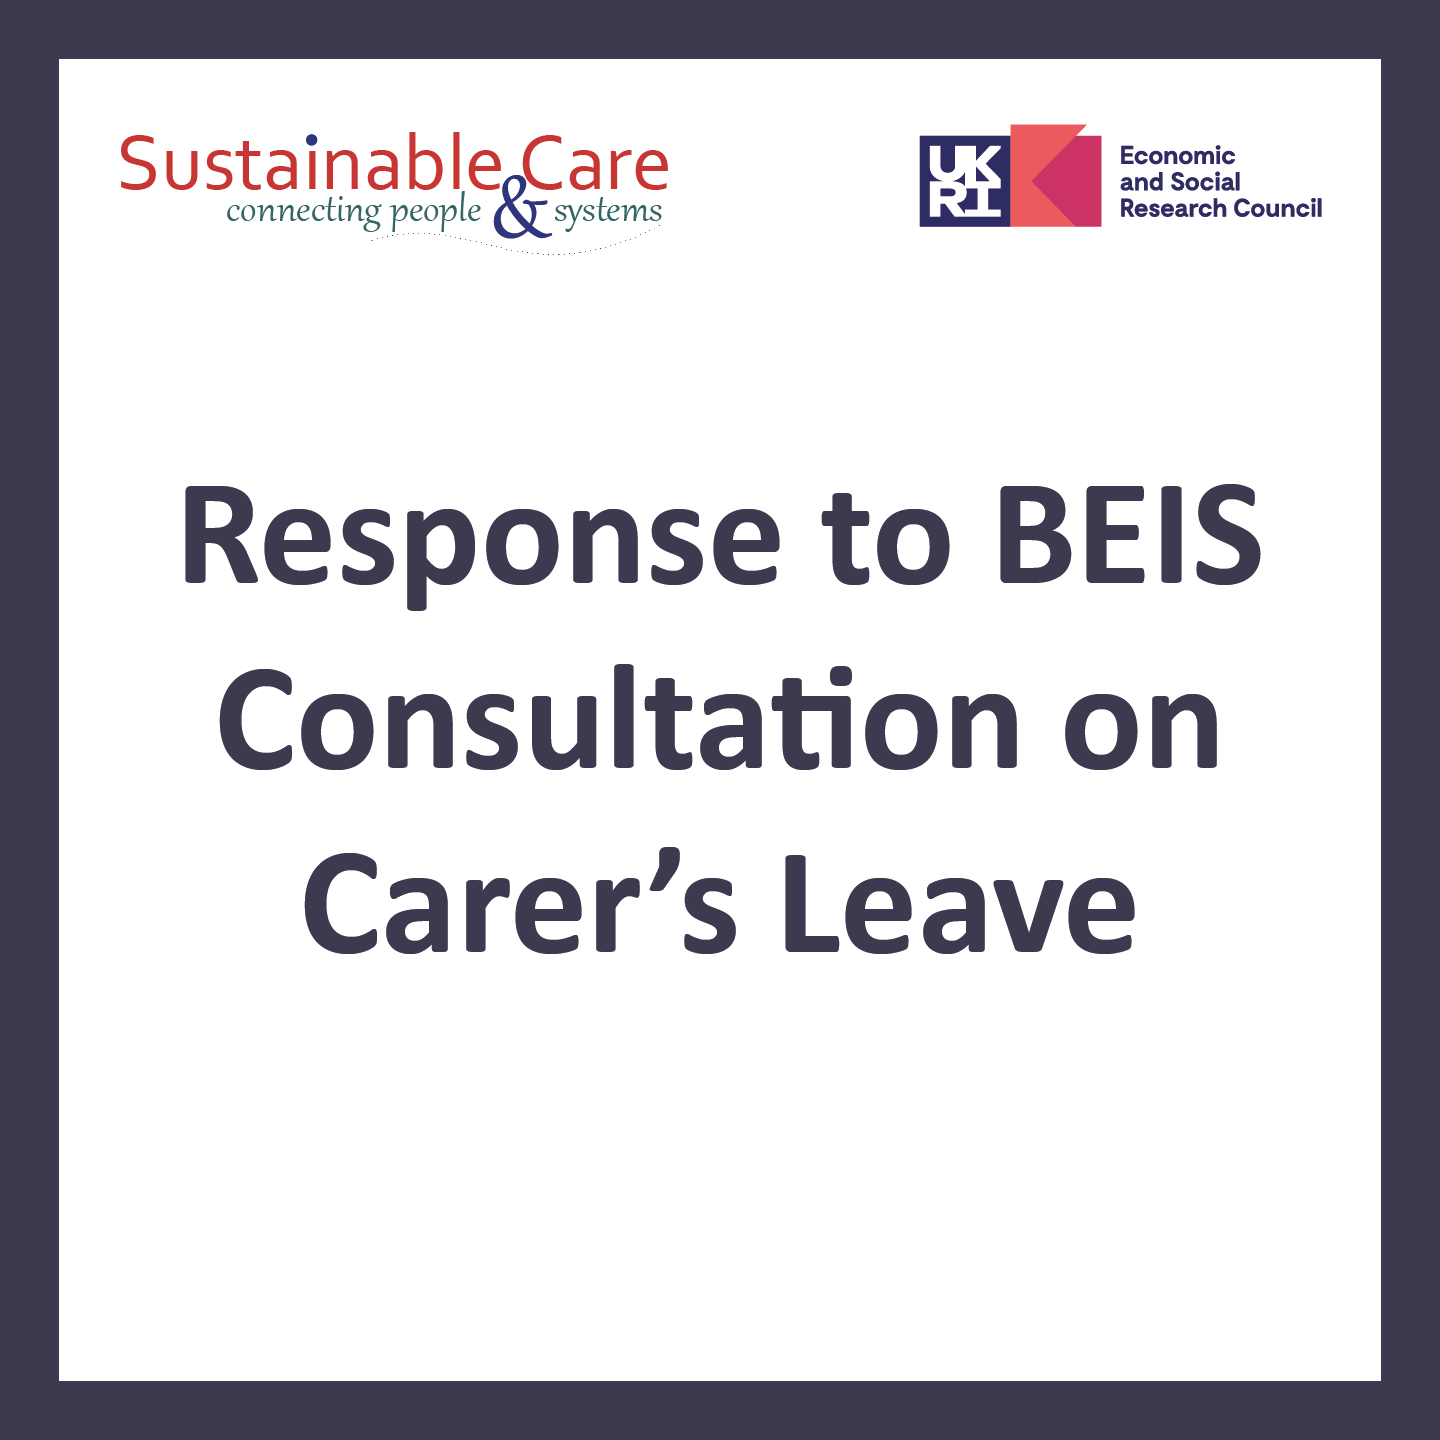 Response to BEIS consultation on carer's leave